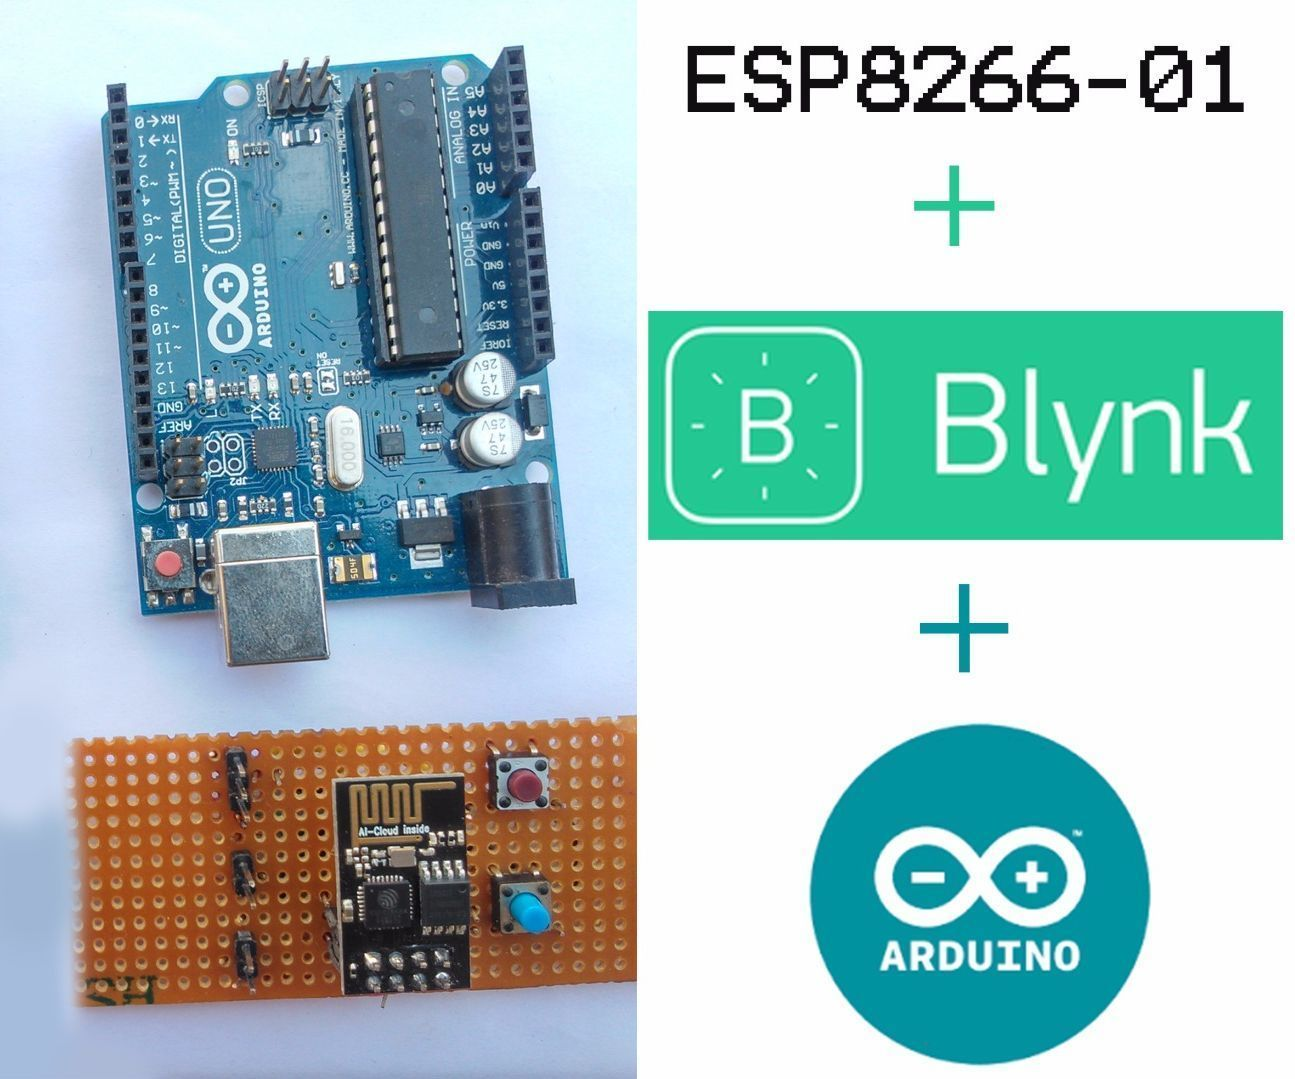 Connecting Esp8266 01 To Arduino Uno Mega And Blynk Stuffp Wiring Explore The Biggest How Diy Community Where People Make Share Inspiring Entertaining Useful Projects Recipes Hacks